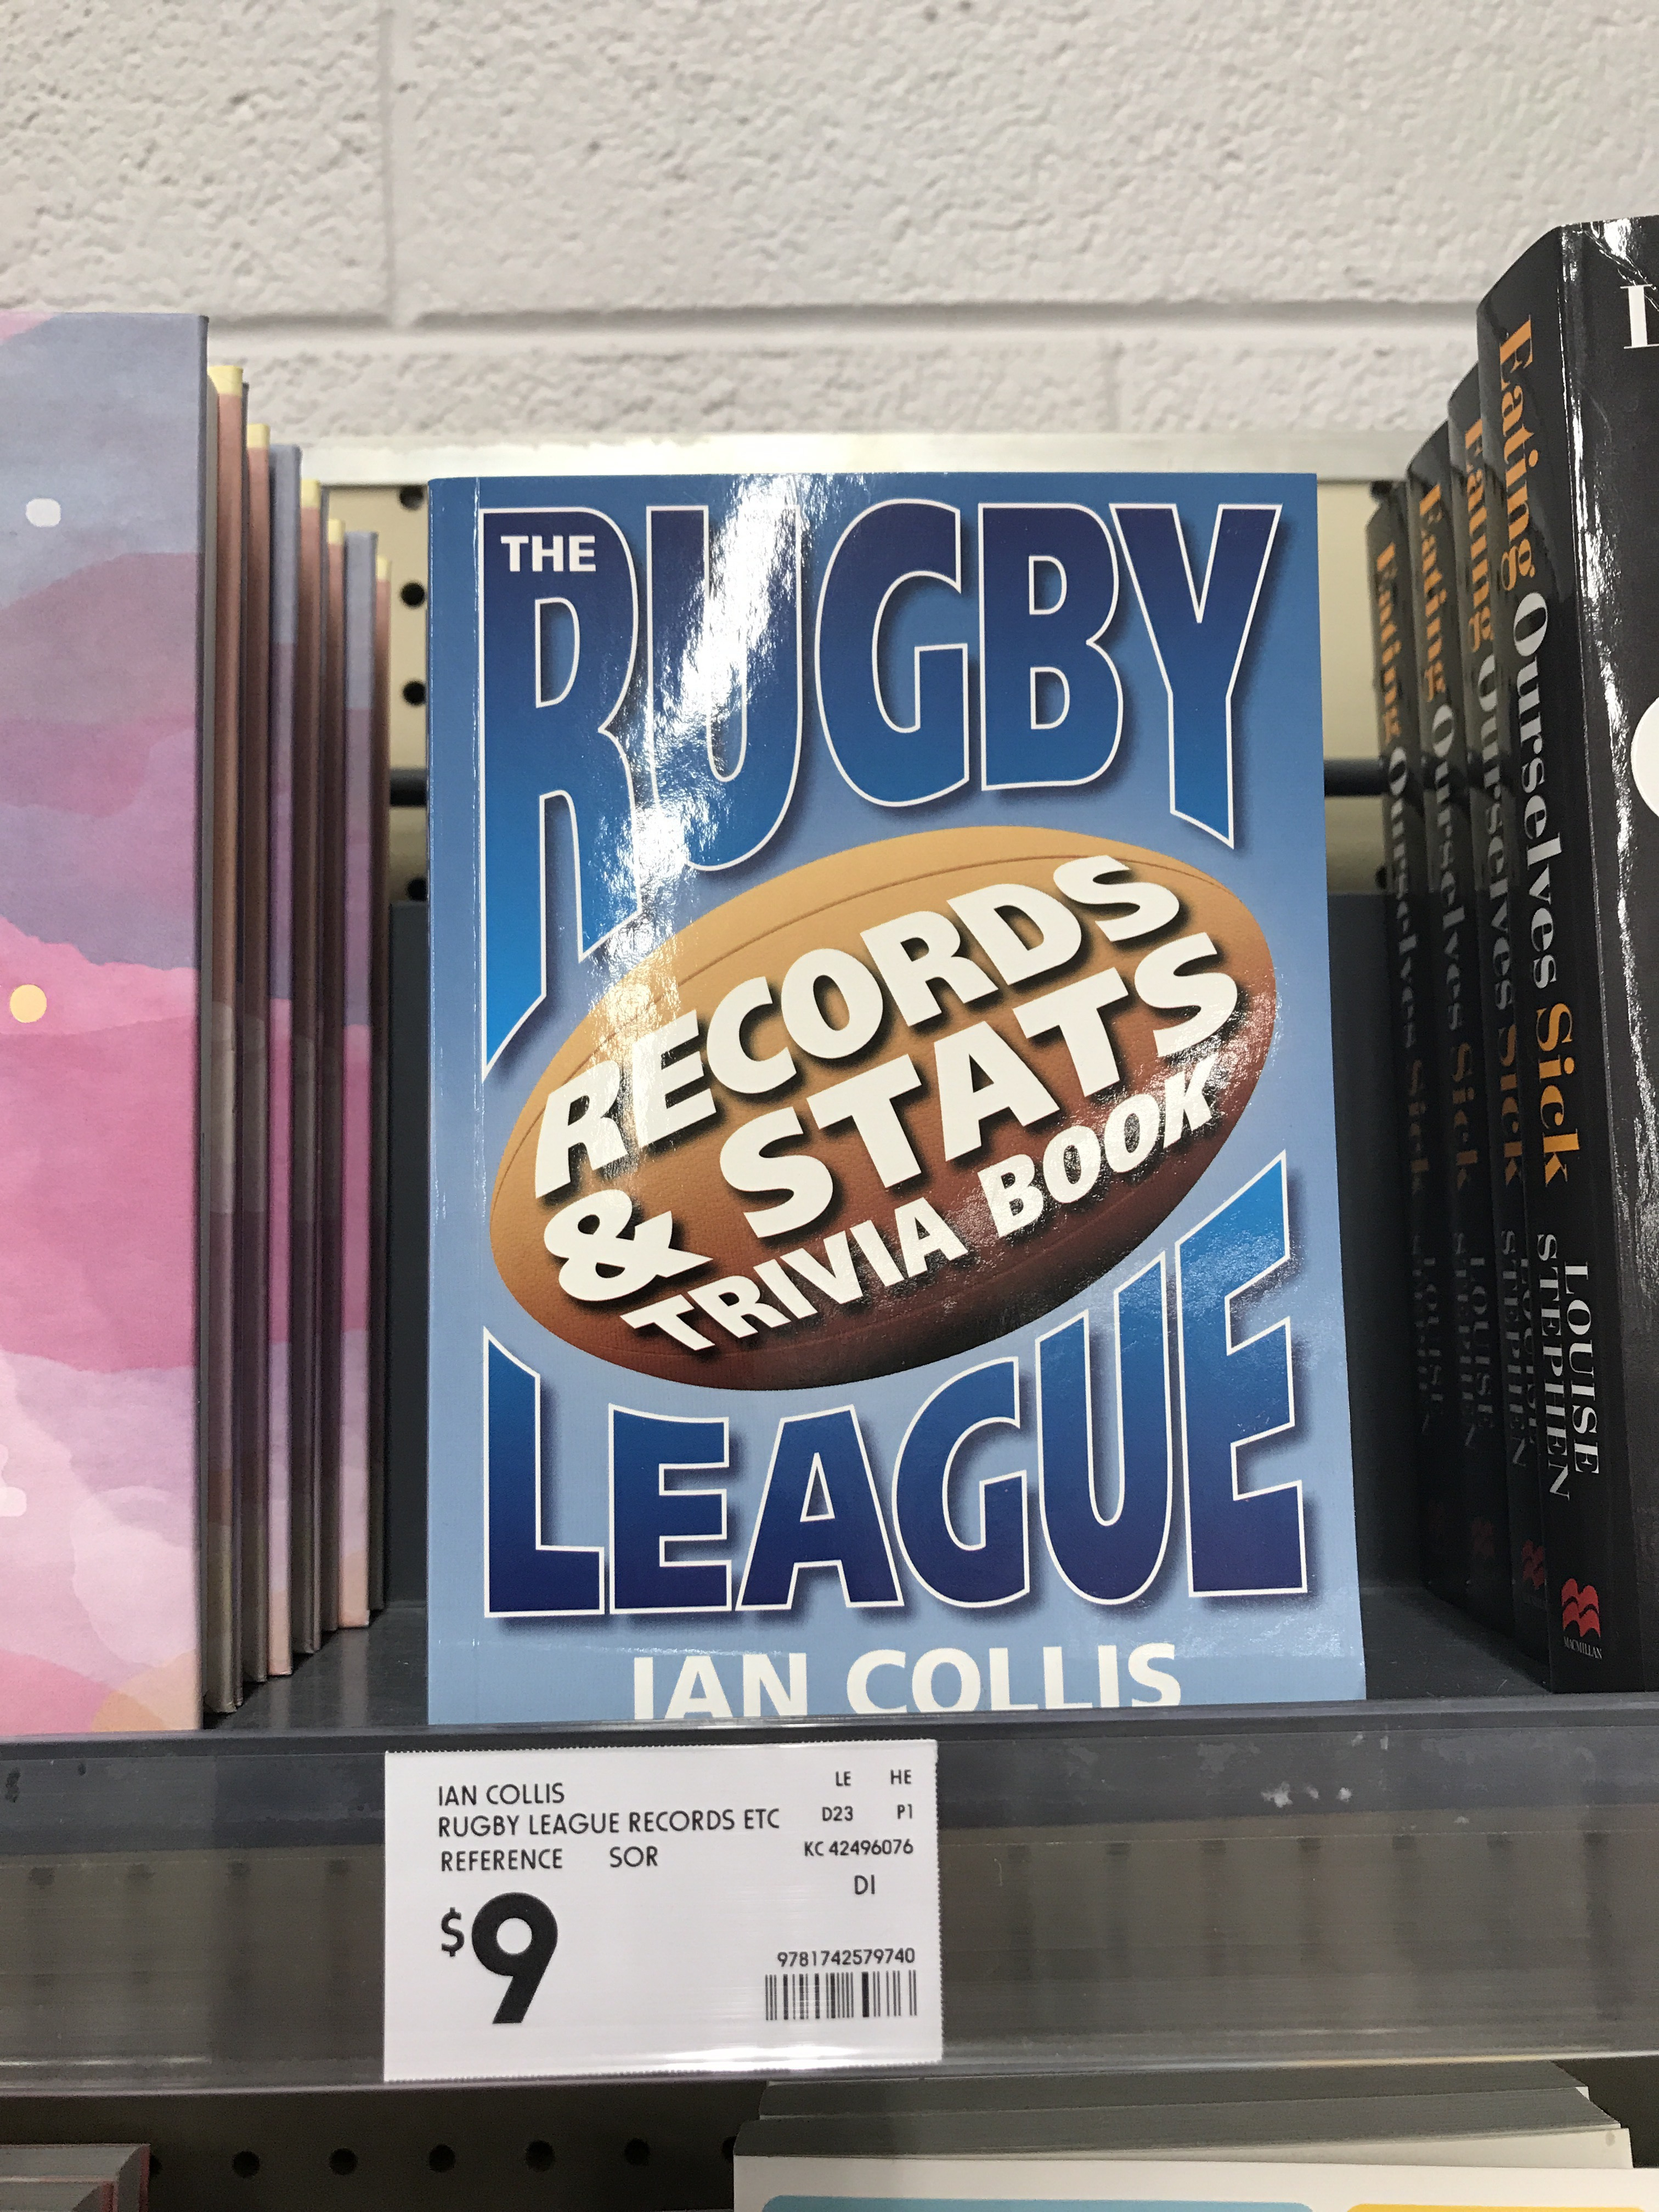 Rugby League Stats And Trivia Book For Sale In Mount Gambier Kmart Not  Expecting A Rush At Any Price